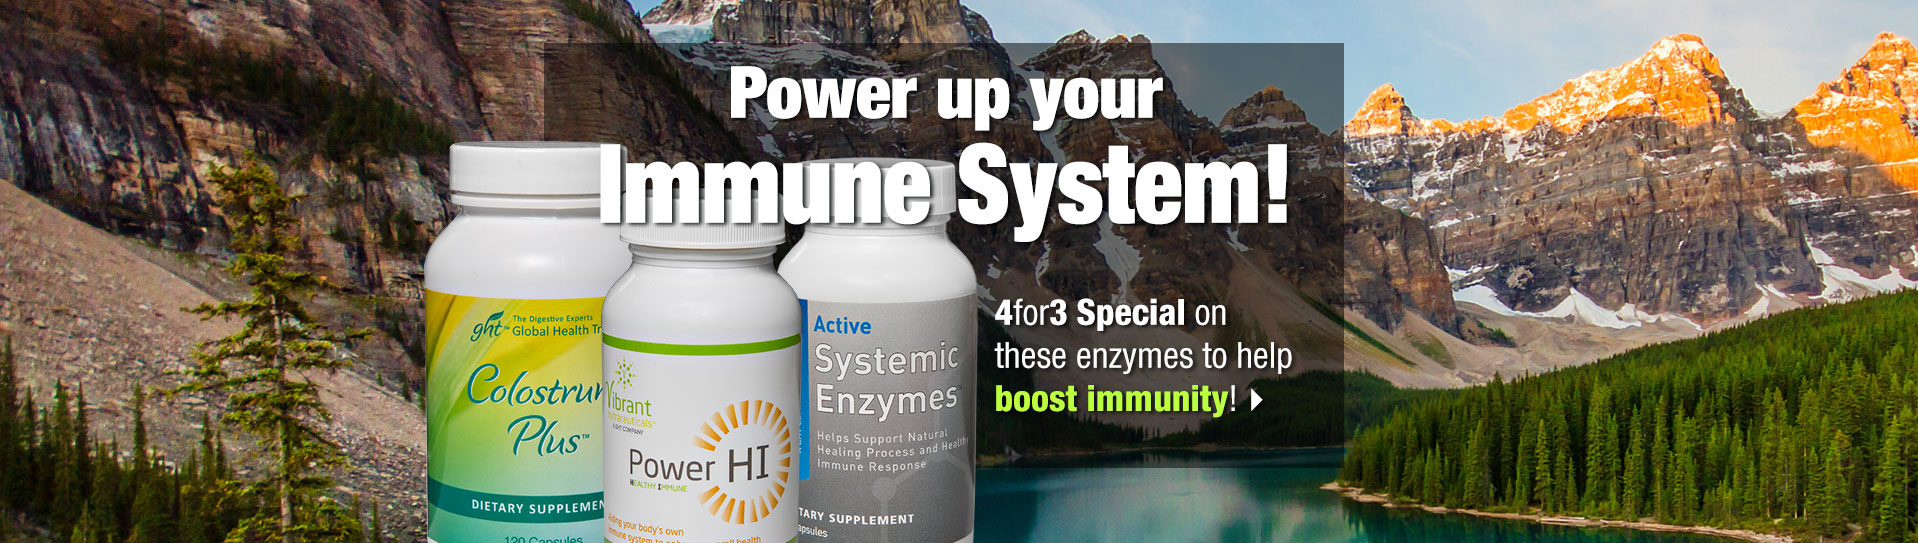 Immune System booster products array